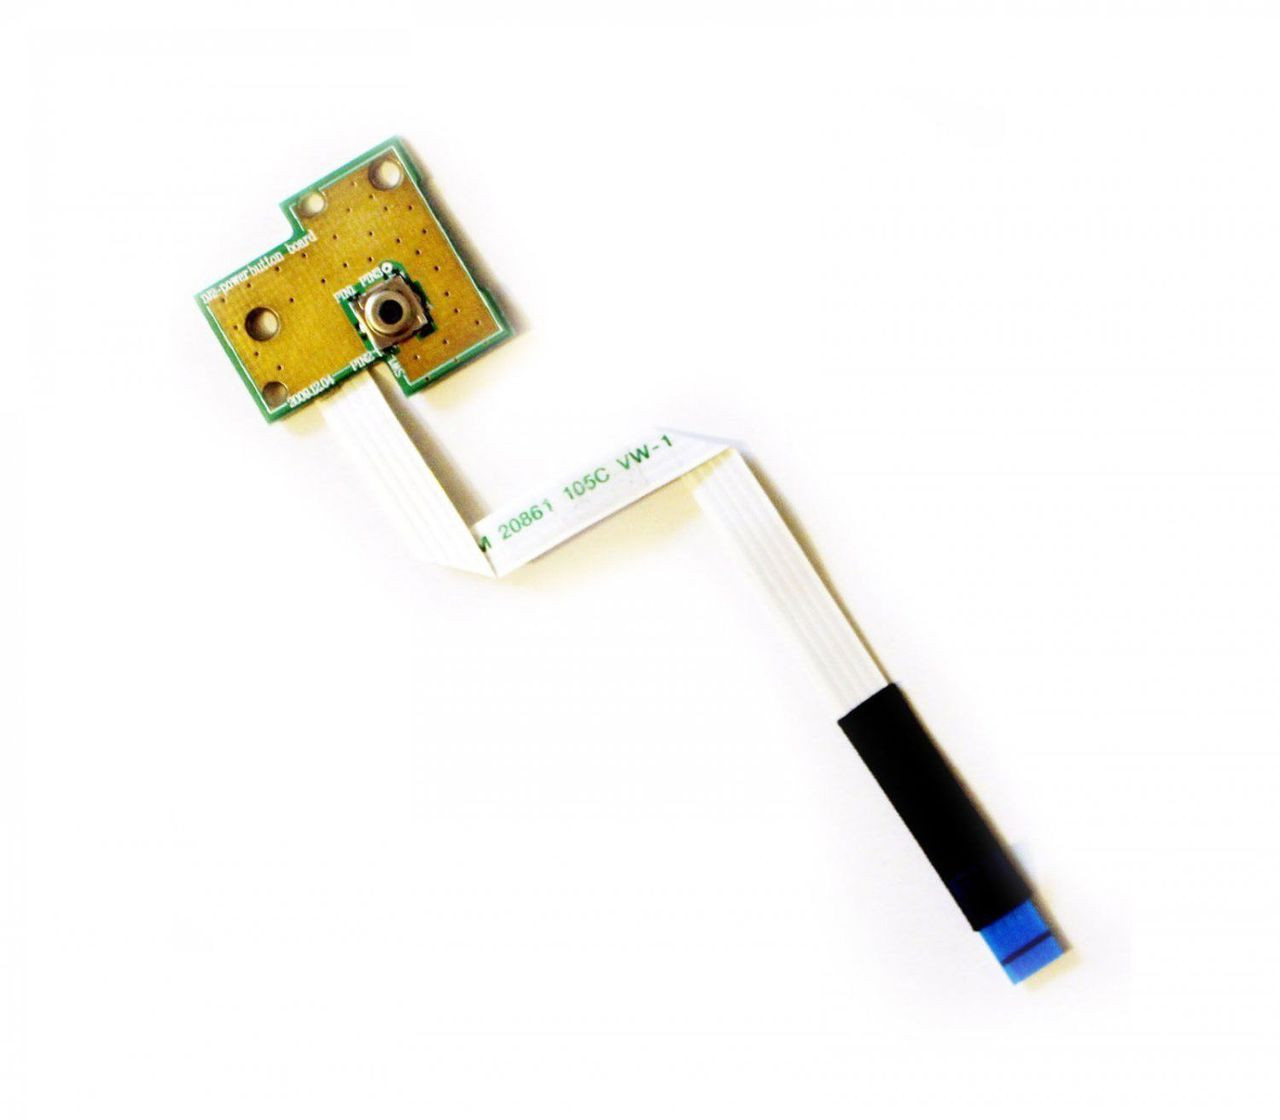 Dell Inspiron M5030 N5030 Power Button Board W Ribbon Cable 50.4EM09.001